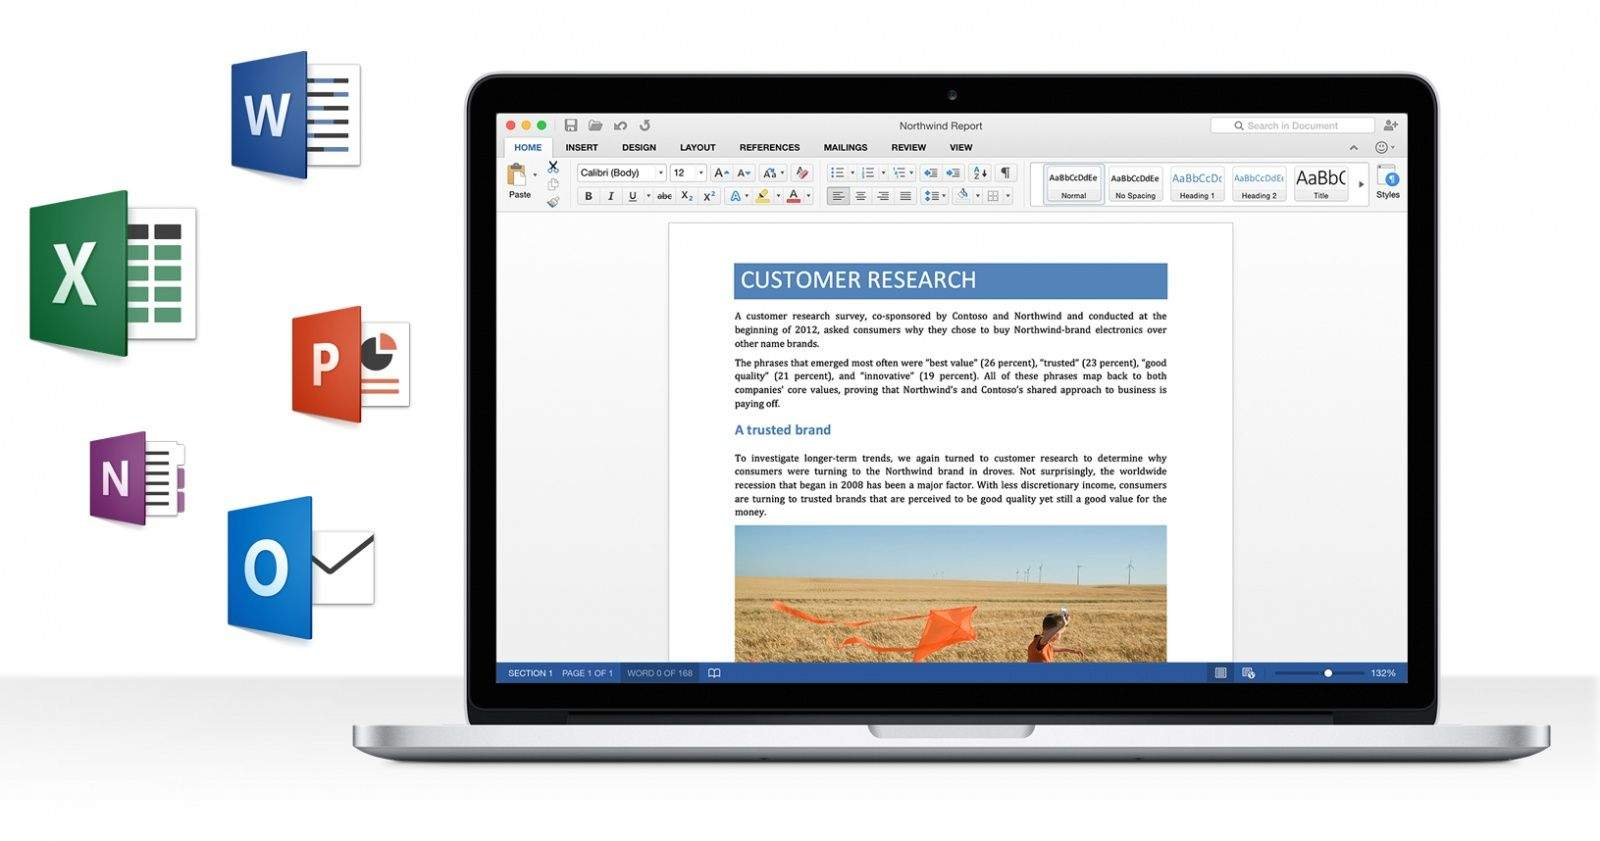 Microsoft Office 2016 For Mac Preview Is Now Available For Free Cult Of Mac  Editing Bookmark